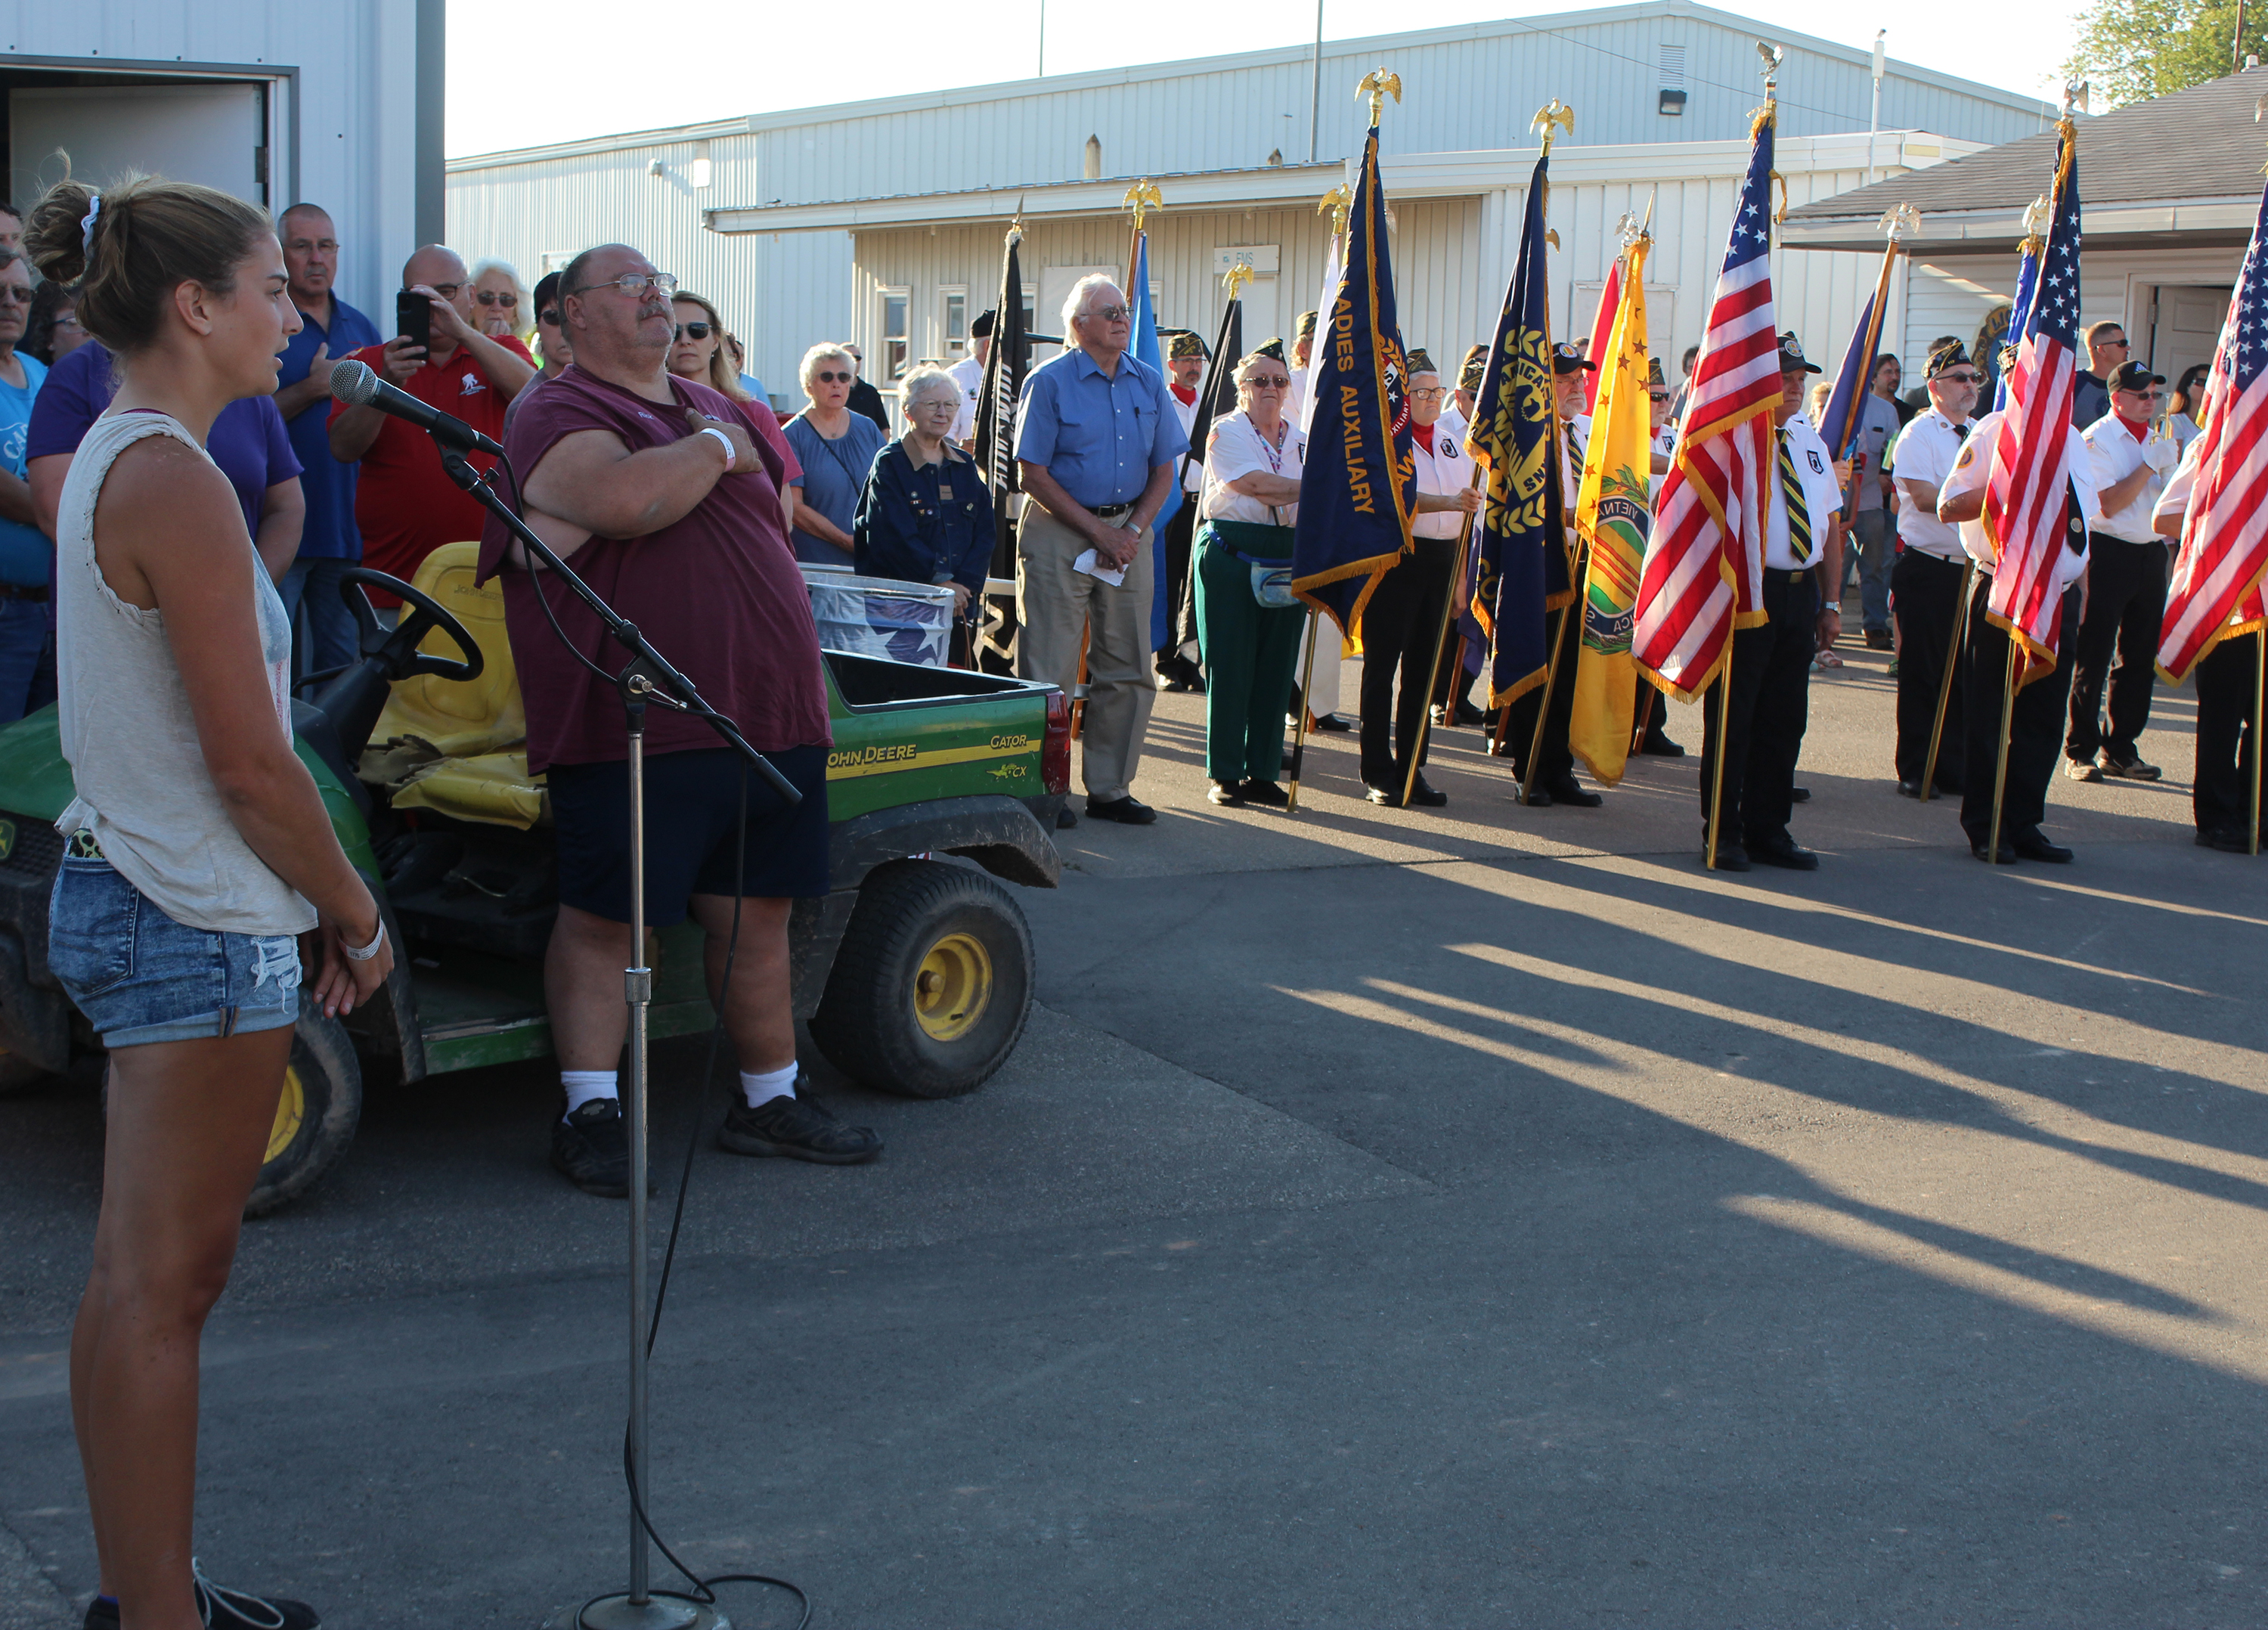 """Brooke Breitrich sings """"Star-Spangled Banner"""" at the opening ceremony for the Shawano County Fair on Sept. 1 as the color guard stands at attention and members of the crowd put their hands on their hearts.<br />(Lee Pulaski   NEW Media)"""